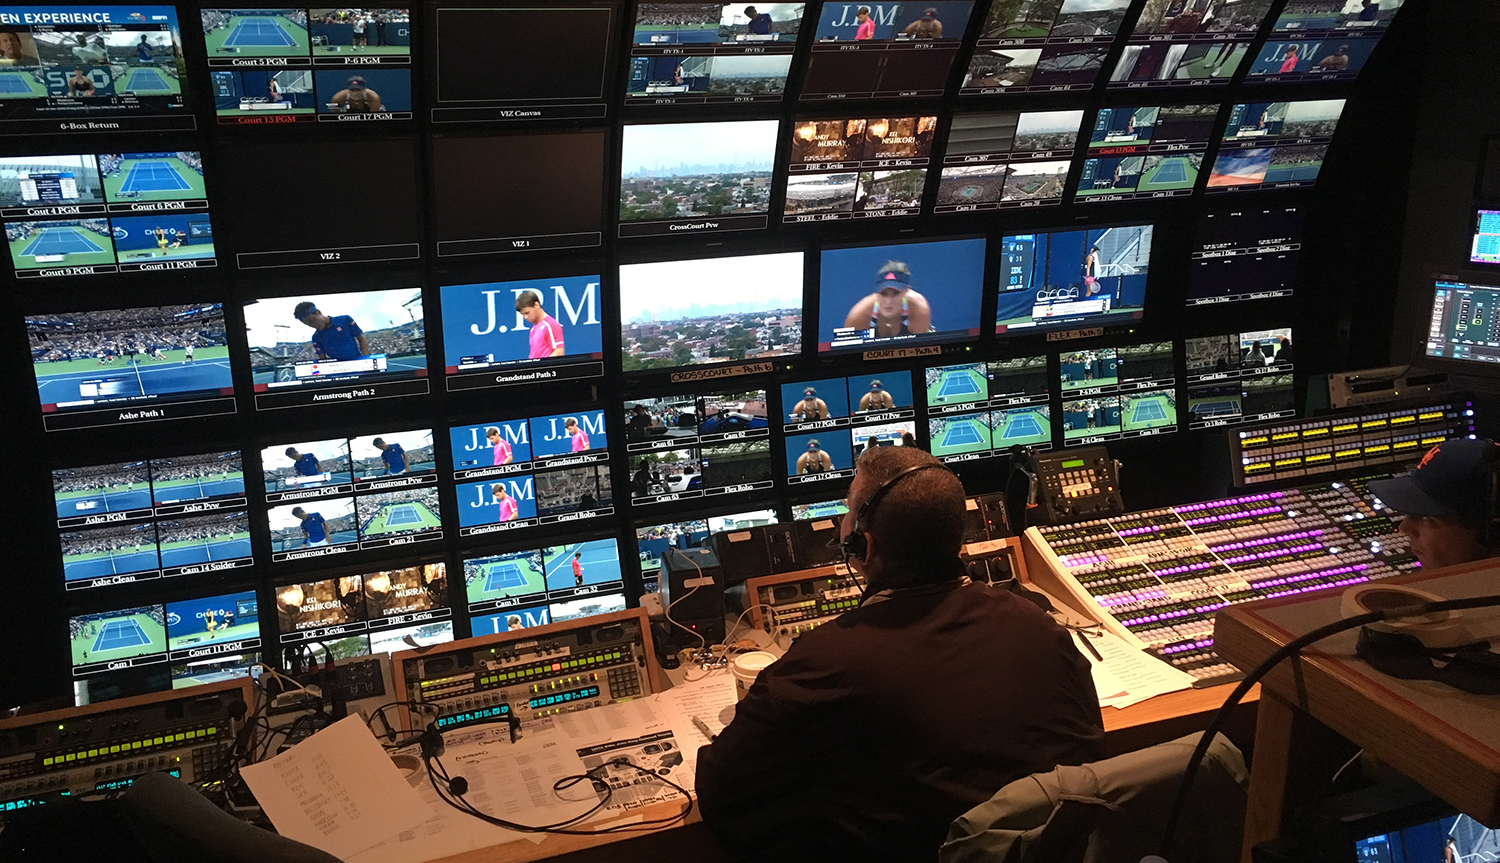 ESPN's ITV operation is the sole control room located in a truck for the US Open.